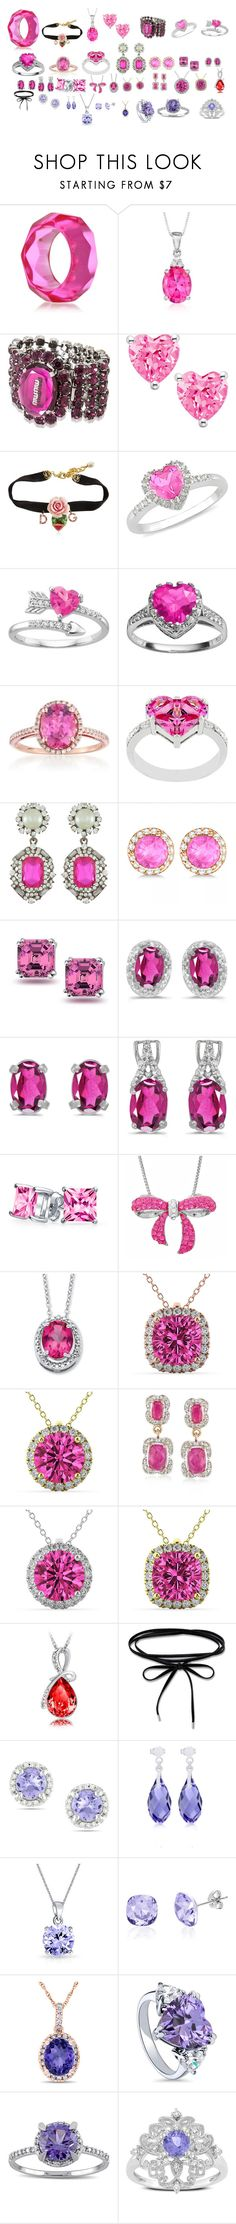 """""""star's jewelry"""" by miliorobb on Polyvore featuring Kenneth Jay Lane, Ross-Simons, Miu Miu, Dolce&Gabbana, Ice, Kate Bissett, Allurez, Bling Jewelry, BillyTheTree and Amanda Rose Collection"""